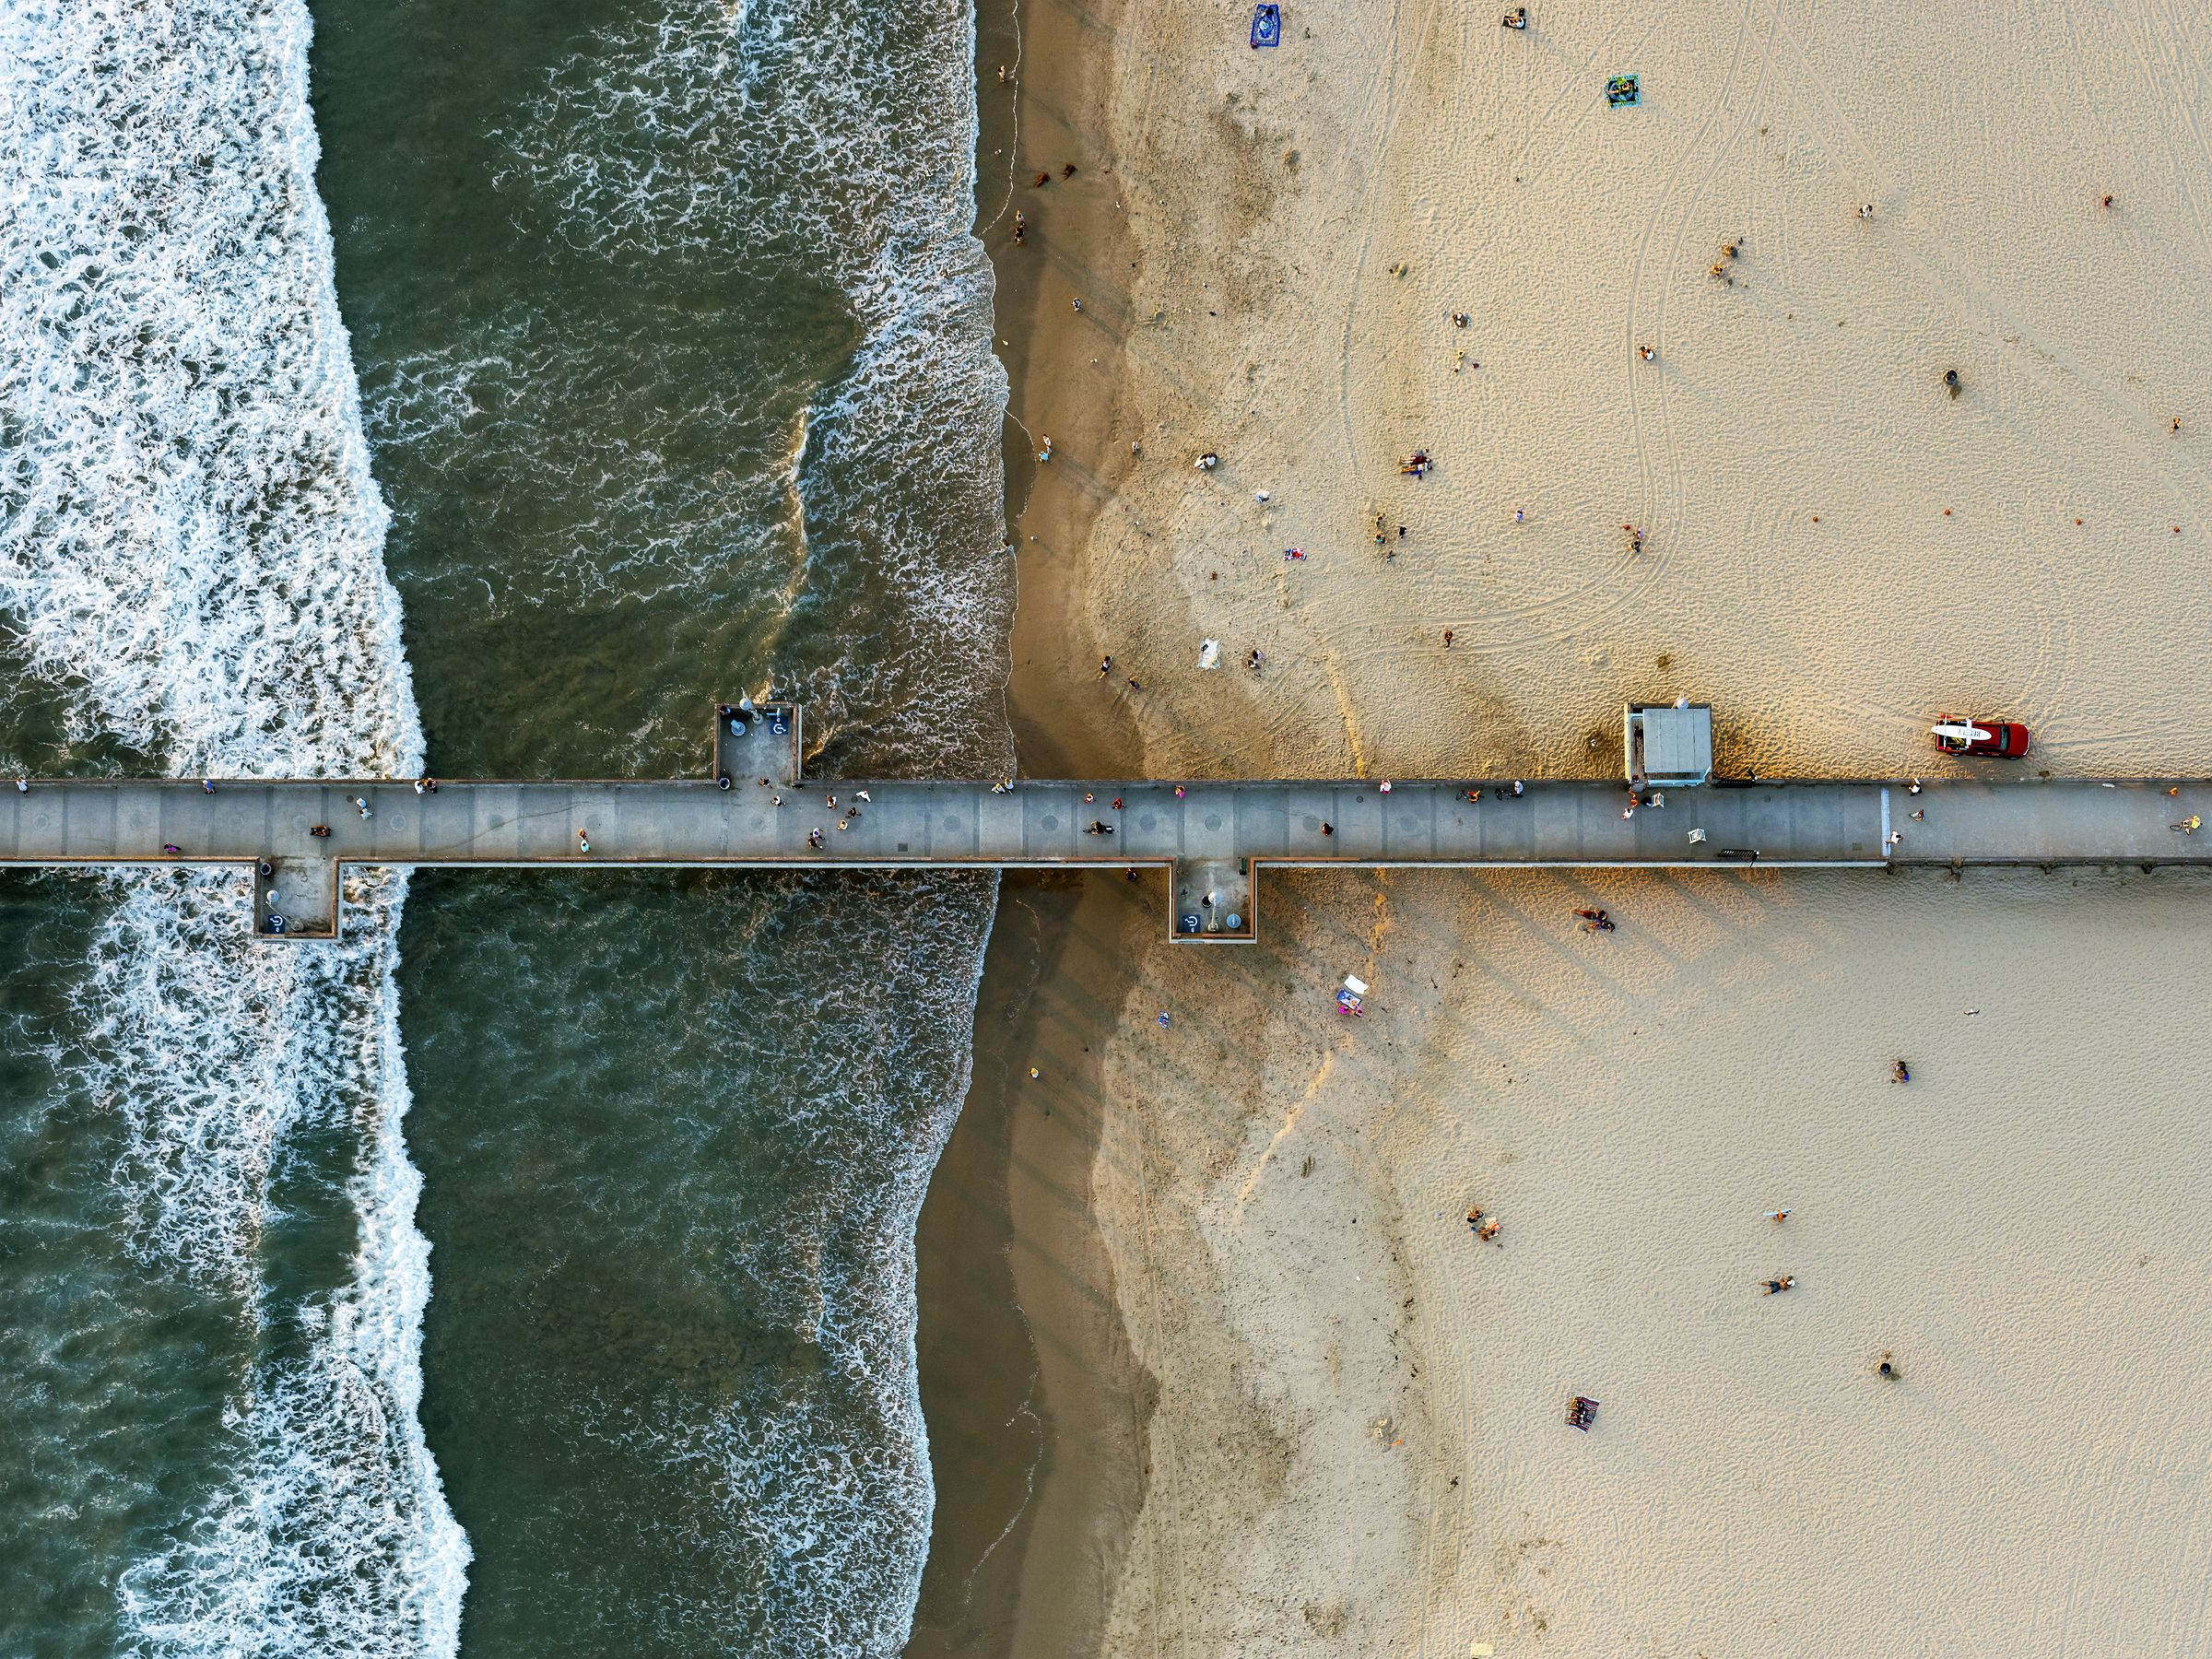 Venice Beach fishing pier, Los Angeles